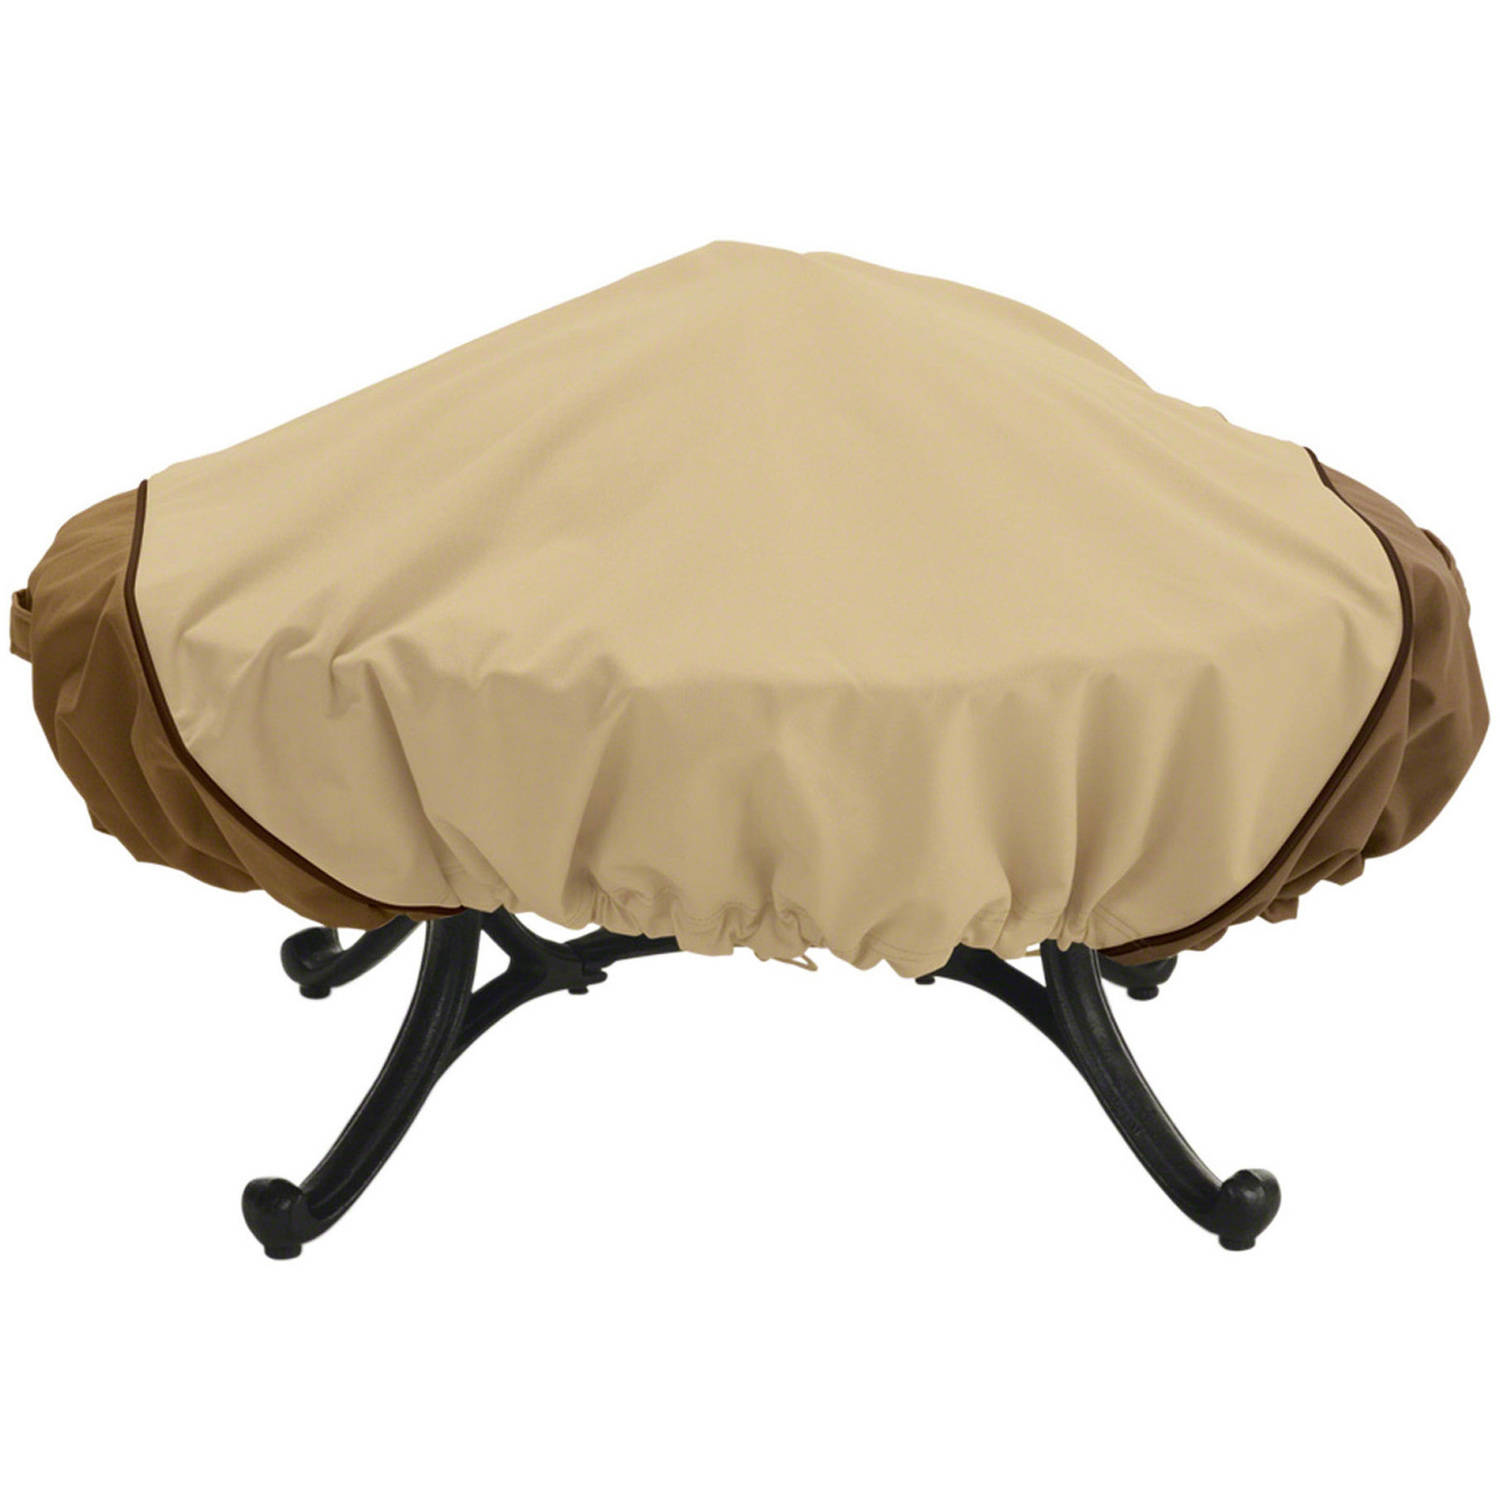 "Classic Accessories Veranda Round Fire Pit Cover, fits up to 44"" diameter"